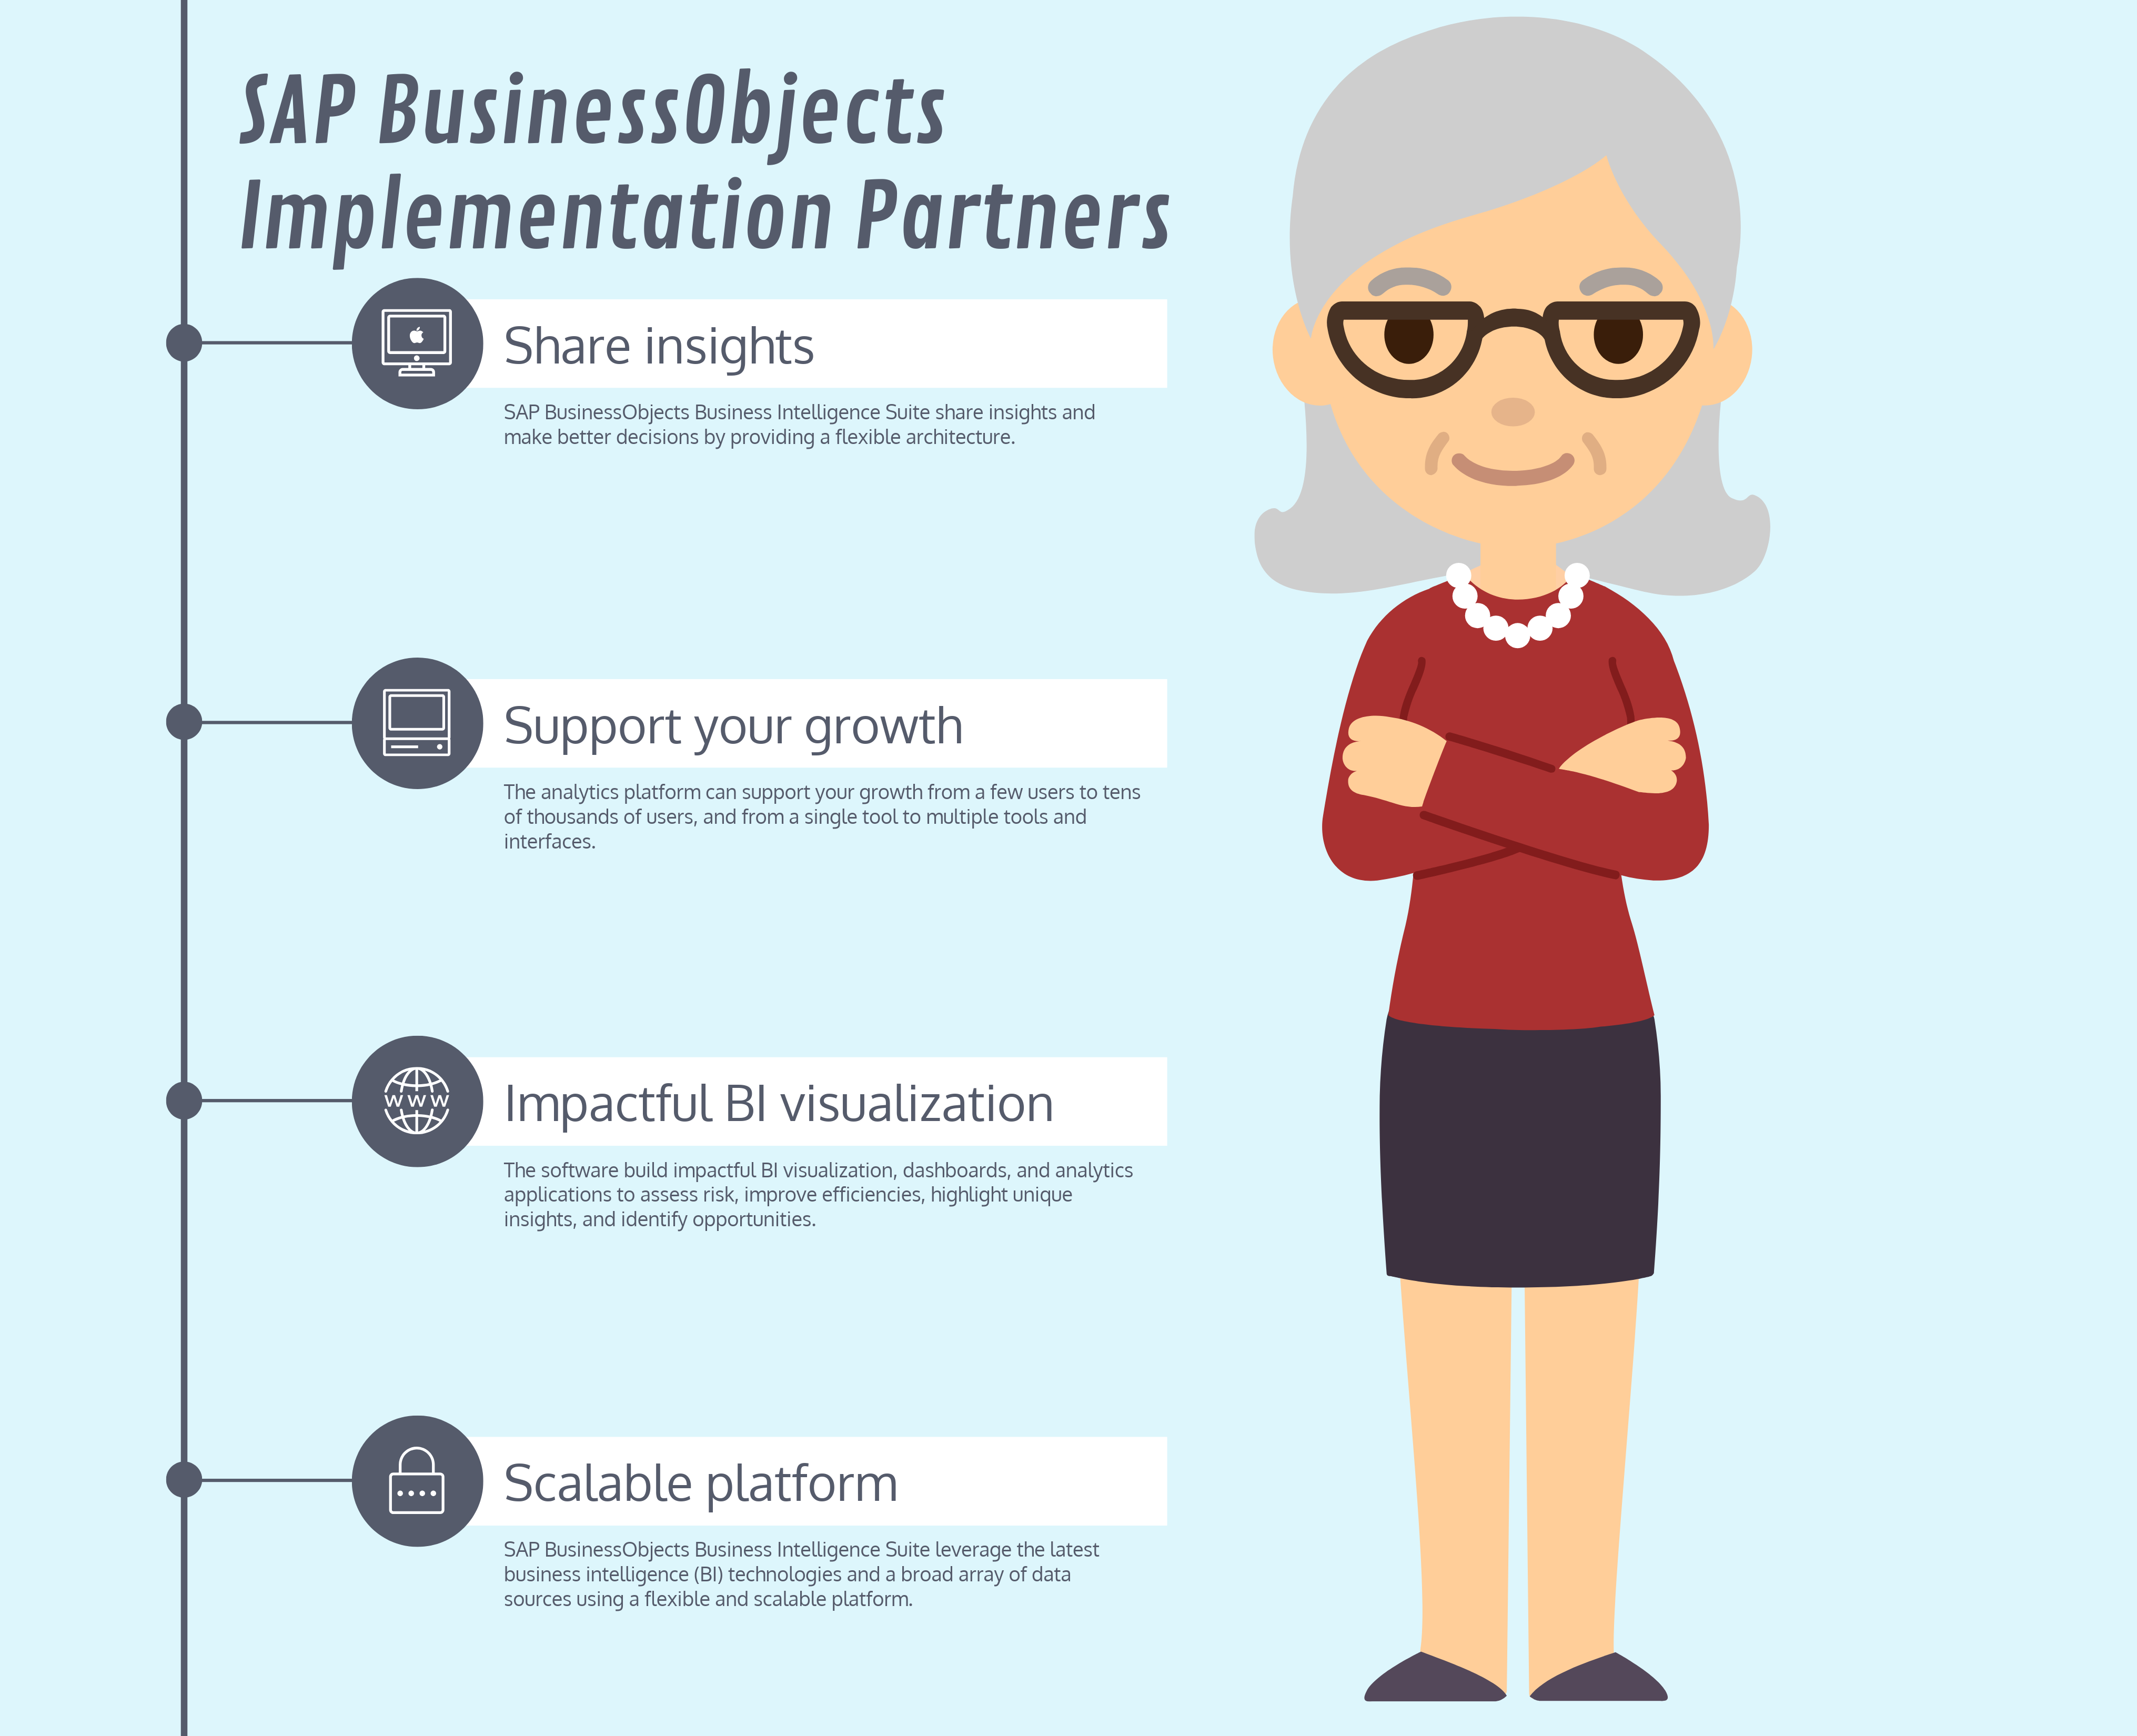 Top 13 Sap Businessobjects Implementation Partners In 2020 Reviews Features Pricing Comparison Pat Research B2b Reviews Buying Guides Best Practices In 2020 Business Intelligence Predictive Analytics Technology Consulting